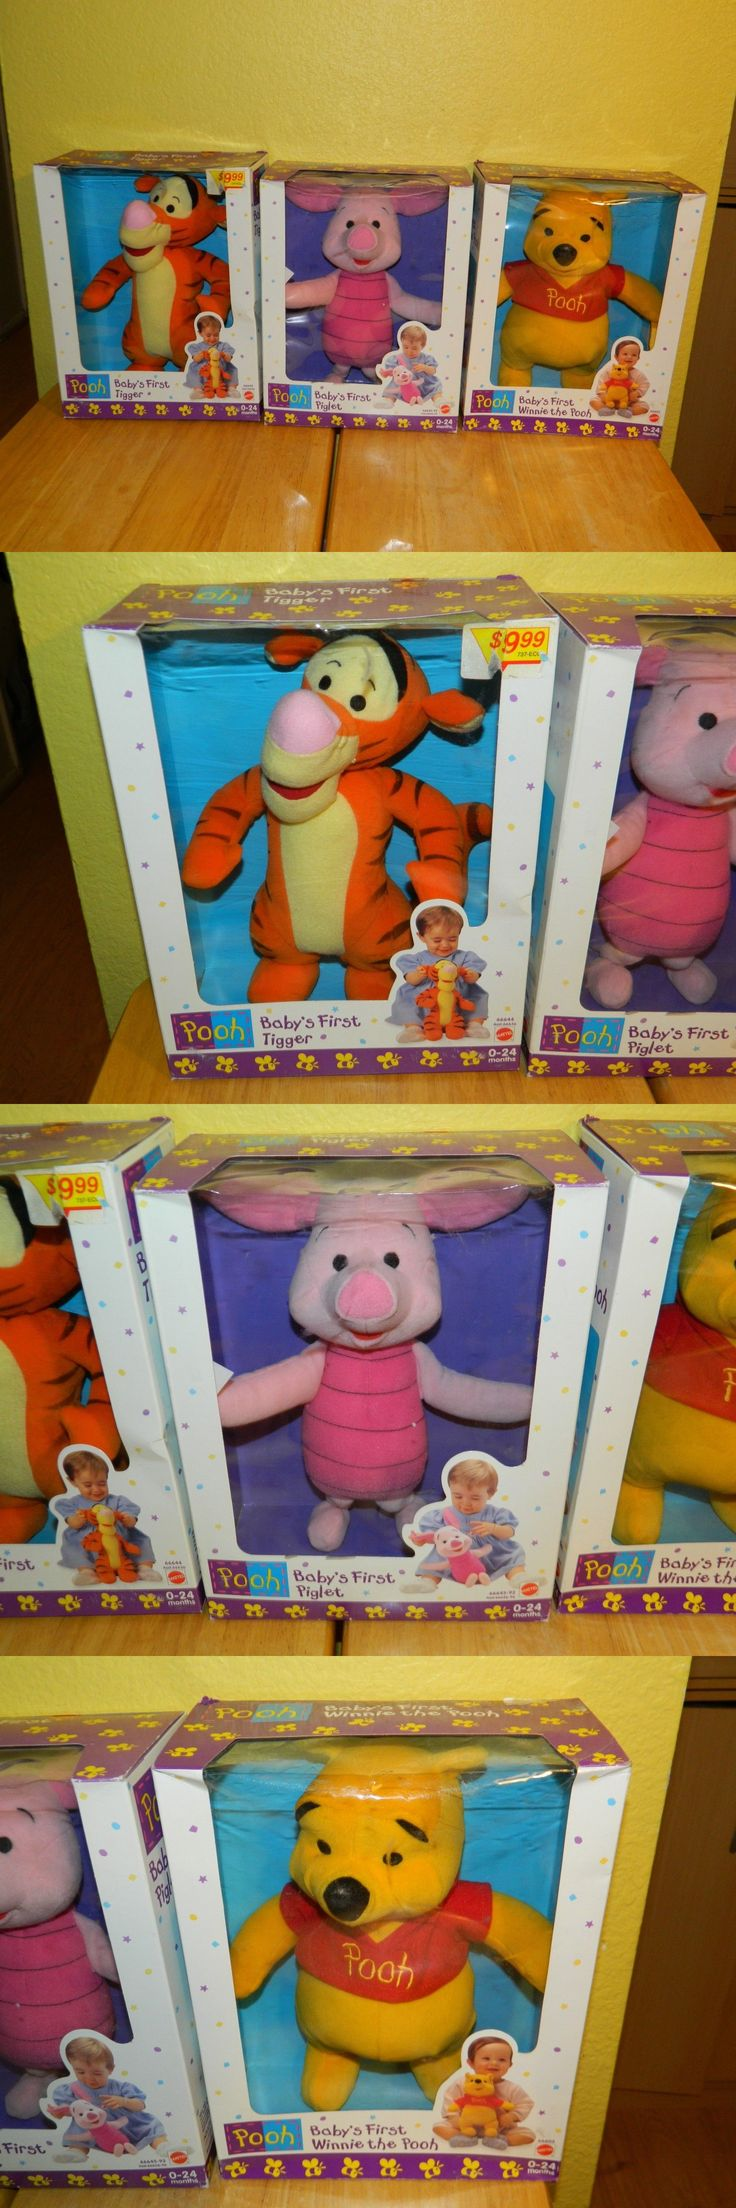 Winnie the Pooh 19251: Lot Of 3 Pooh Baby S First Tigger Piglet Winnie The Pooh Mattel Plush Animals -> BUY IT NOW ONLY: $71.99 on eBay!